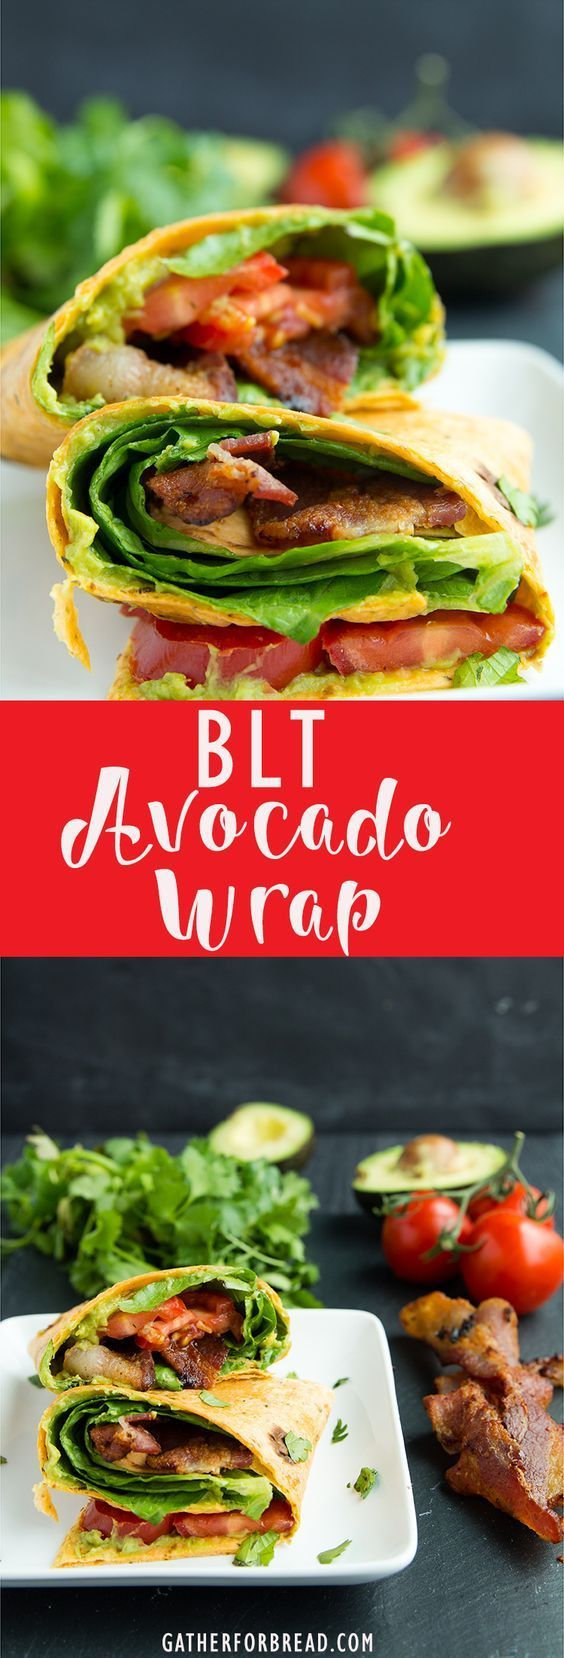 BLT Avocado Wrap - Easy , 5 ingredients guacamole blt wrap. My favorite! | http://gatherforbread.com